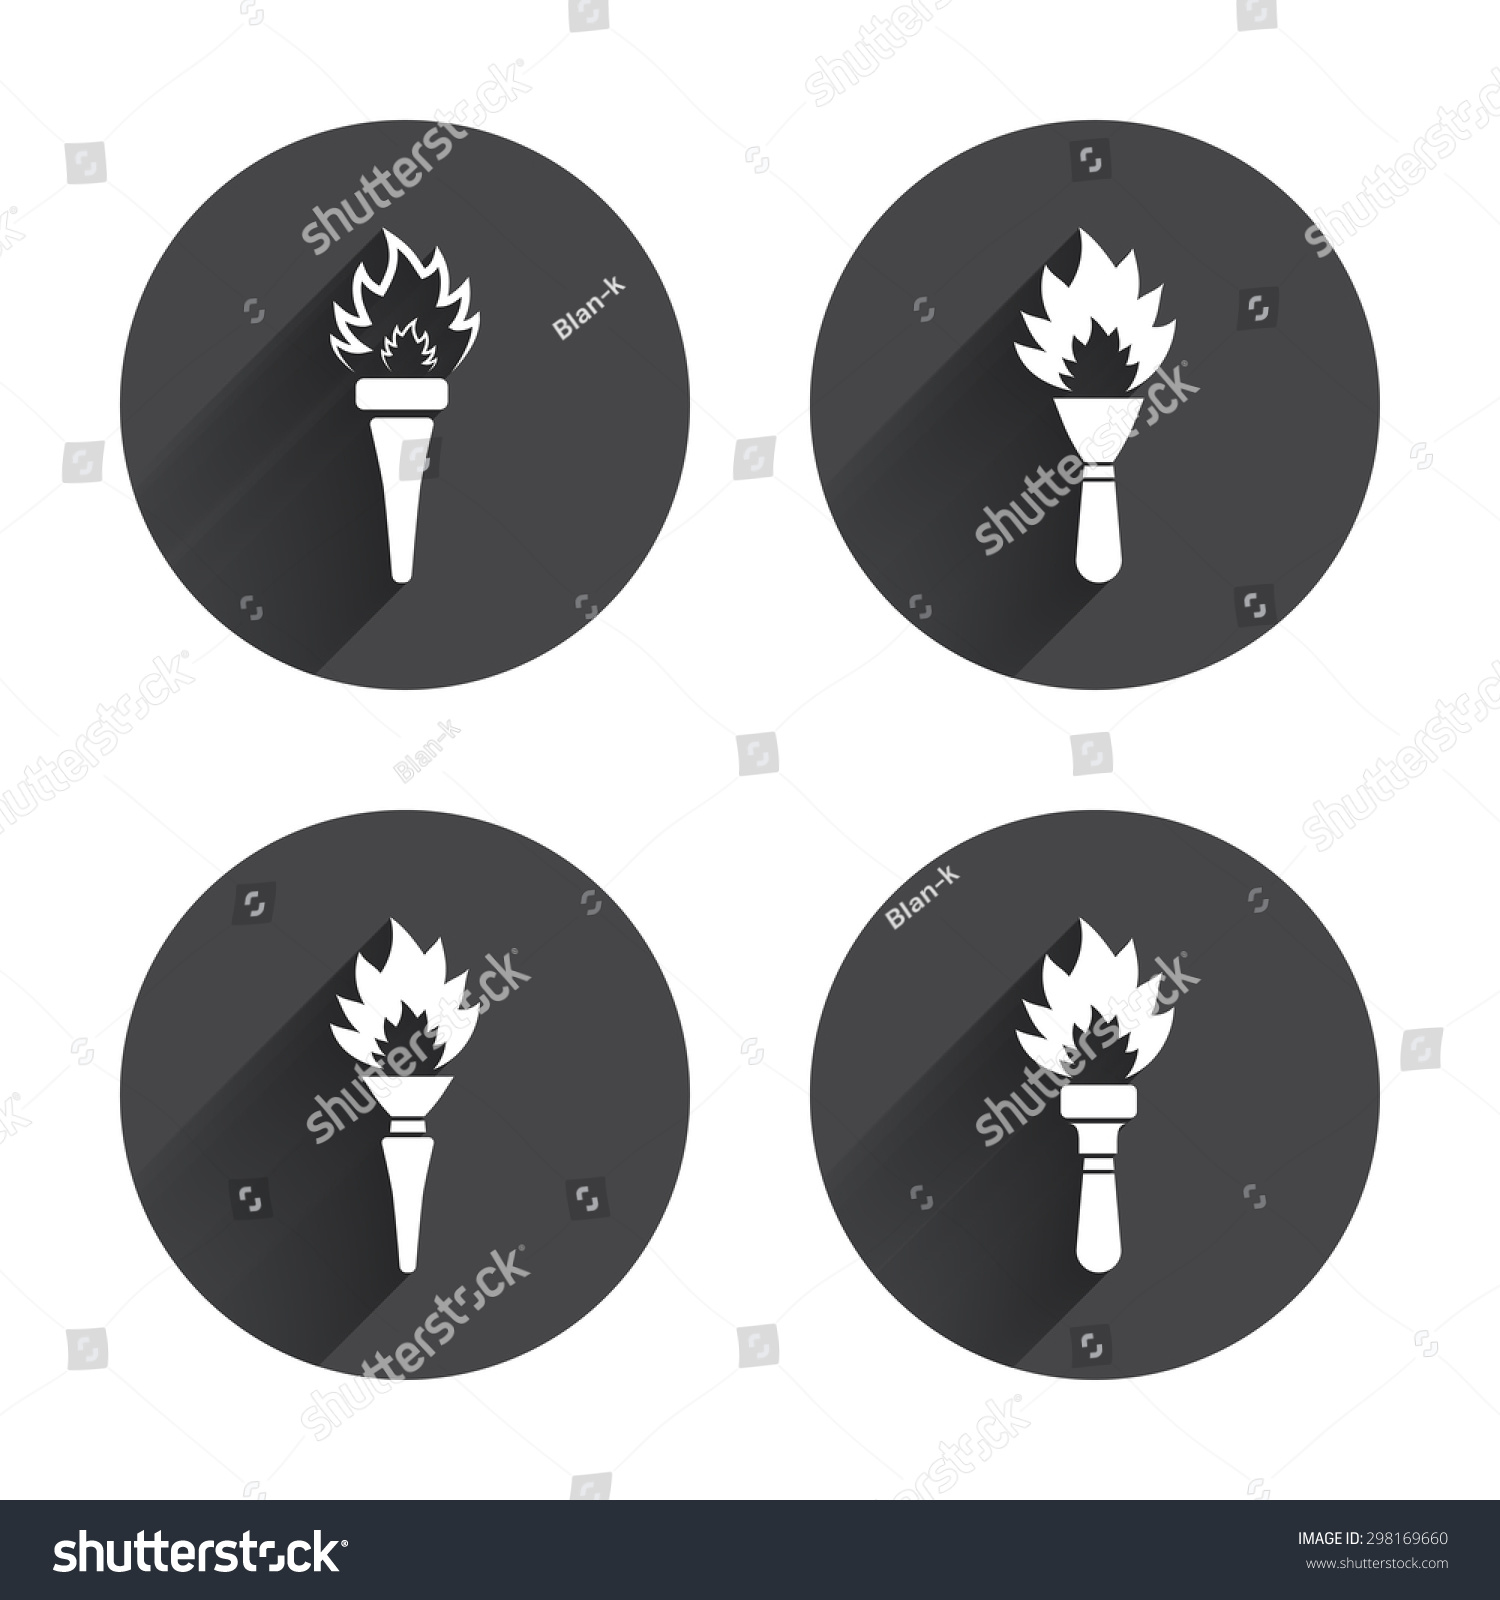 Torch flame icons. Fire flaming symbols. Hand tool which provides light or heat.  sc 1 st  Shutterstock & Torch Flame Icons Fire Flaming Symbols Stock Vector 298169660 ... azcodes.com